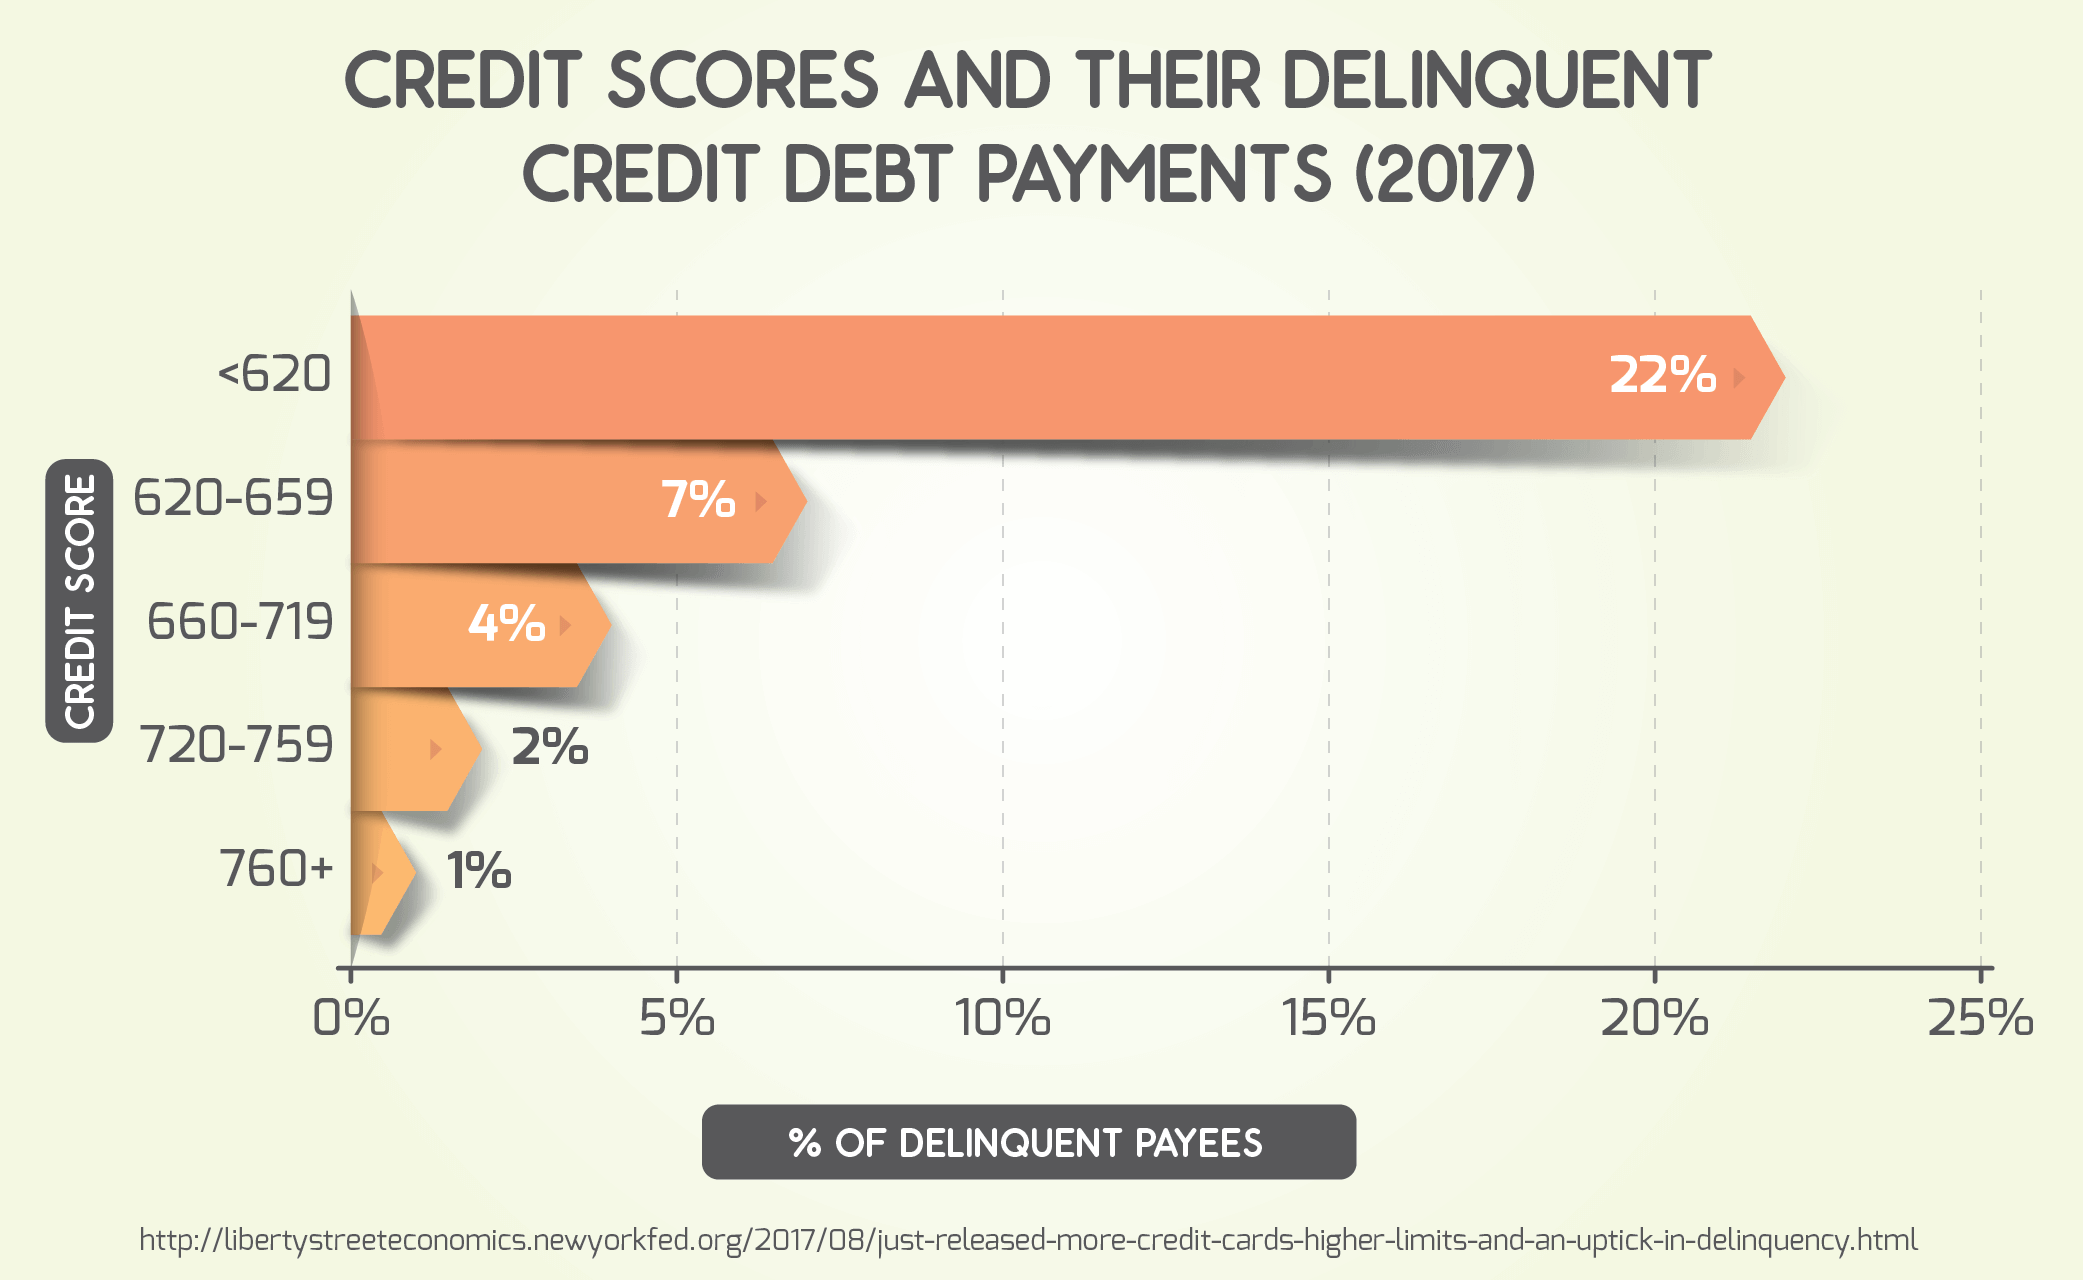 Credit Scores and Their Delinquent Credit Debt Payments (2017)